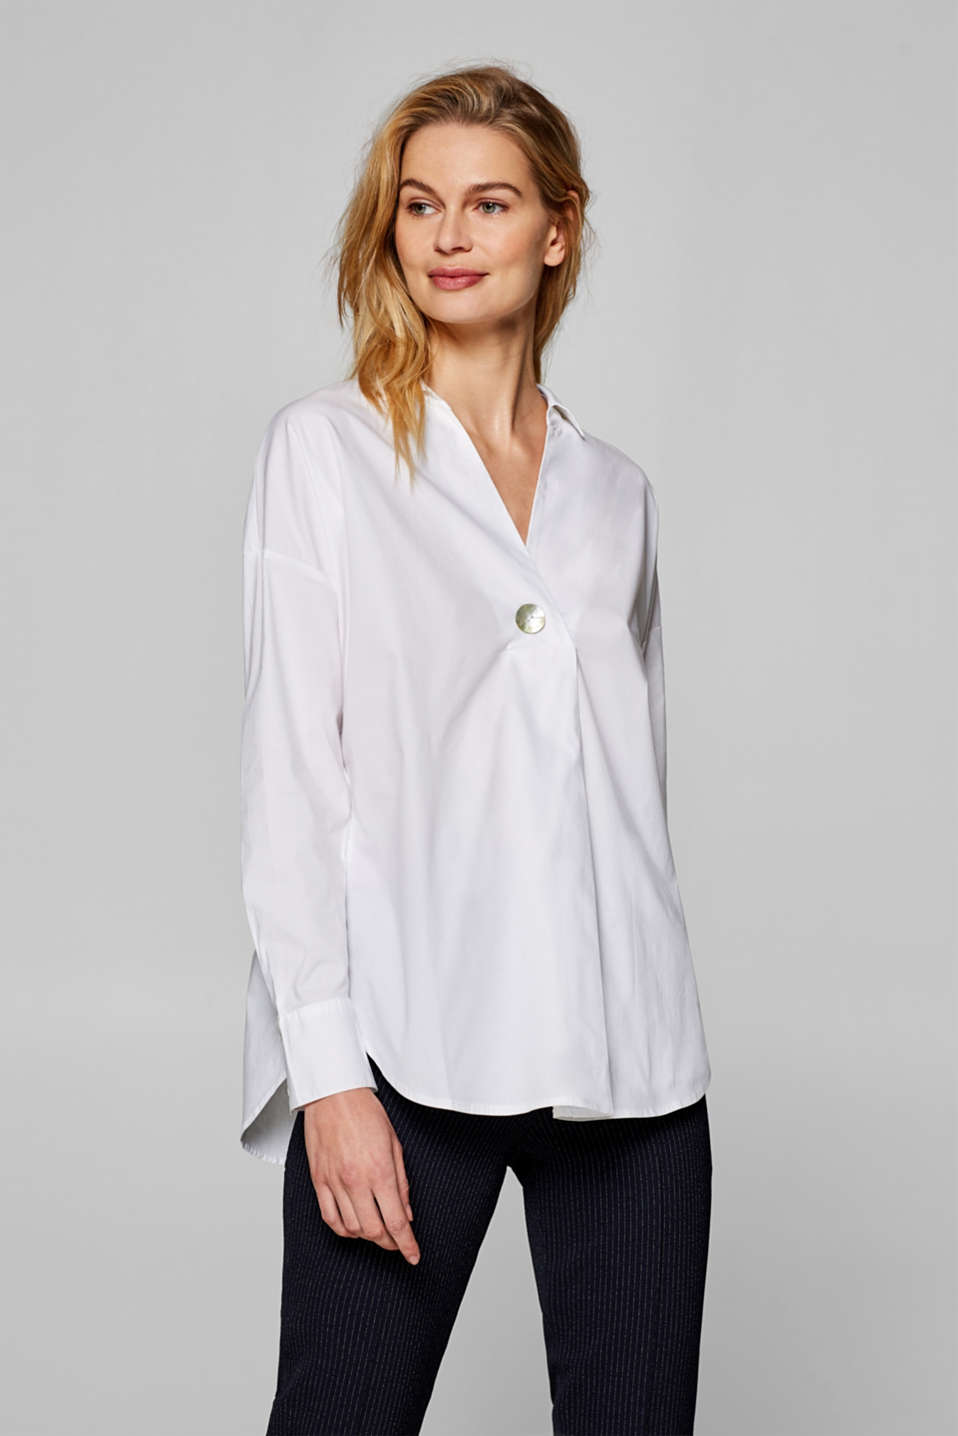 Esprit - Stretch blouse with a mother-of-pearl button